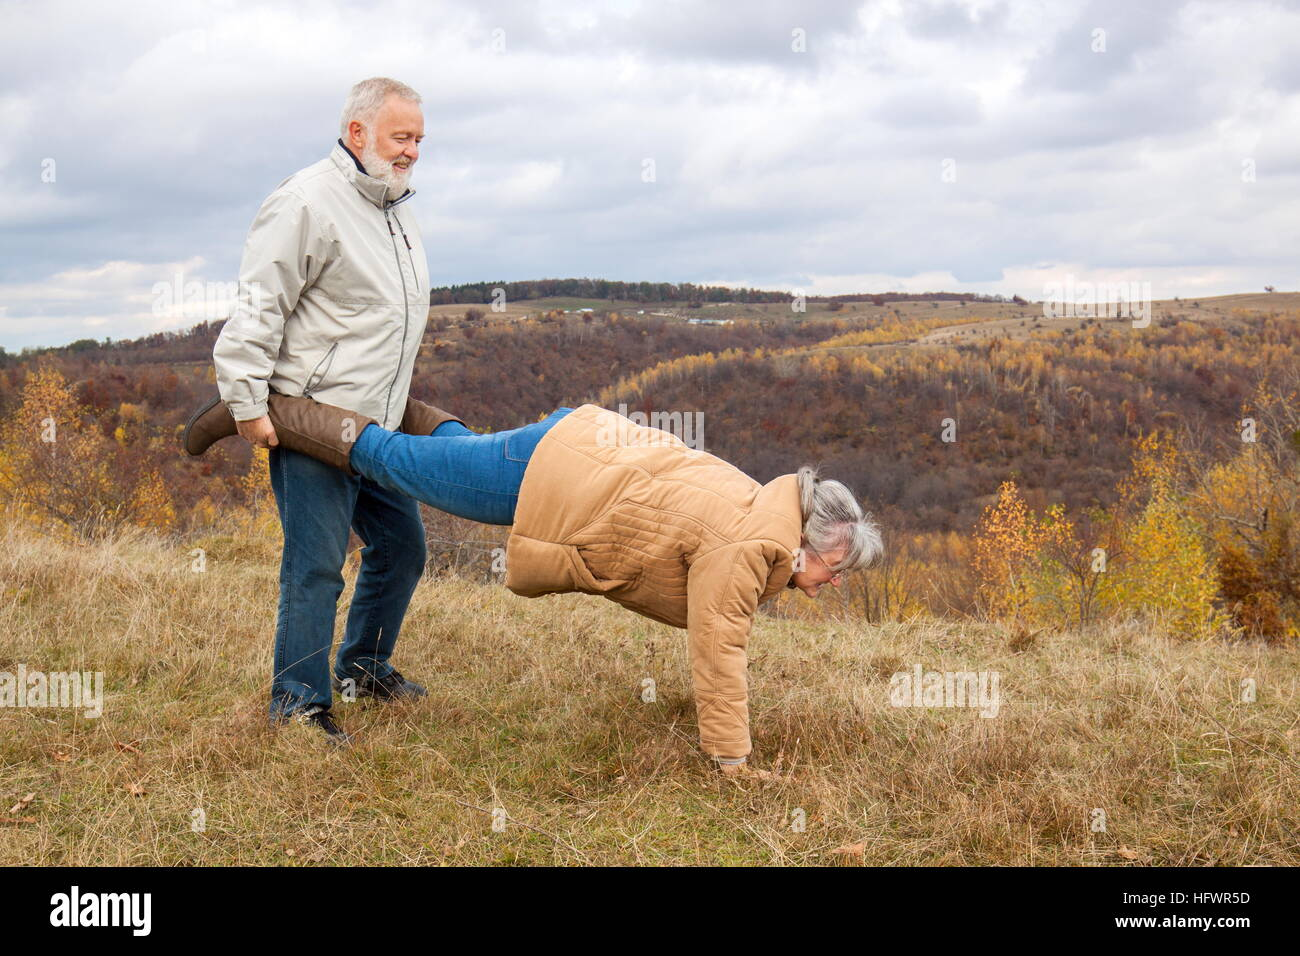 Elderly Couple Having Fun And Playing The Wheelbarrow In Nature